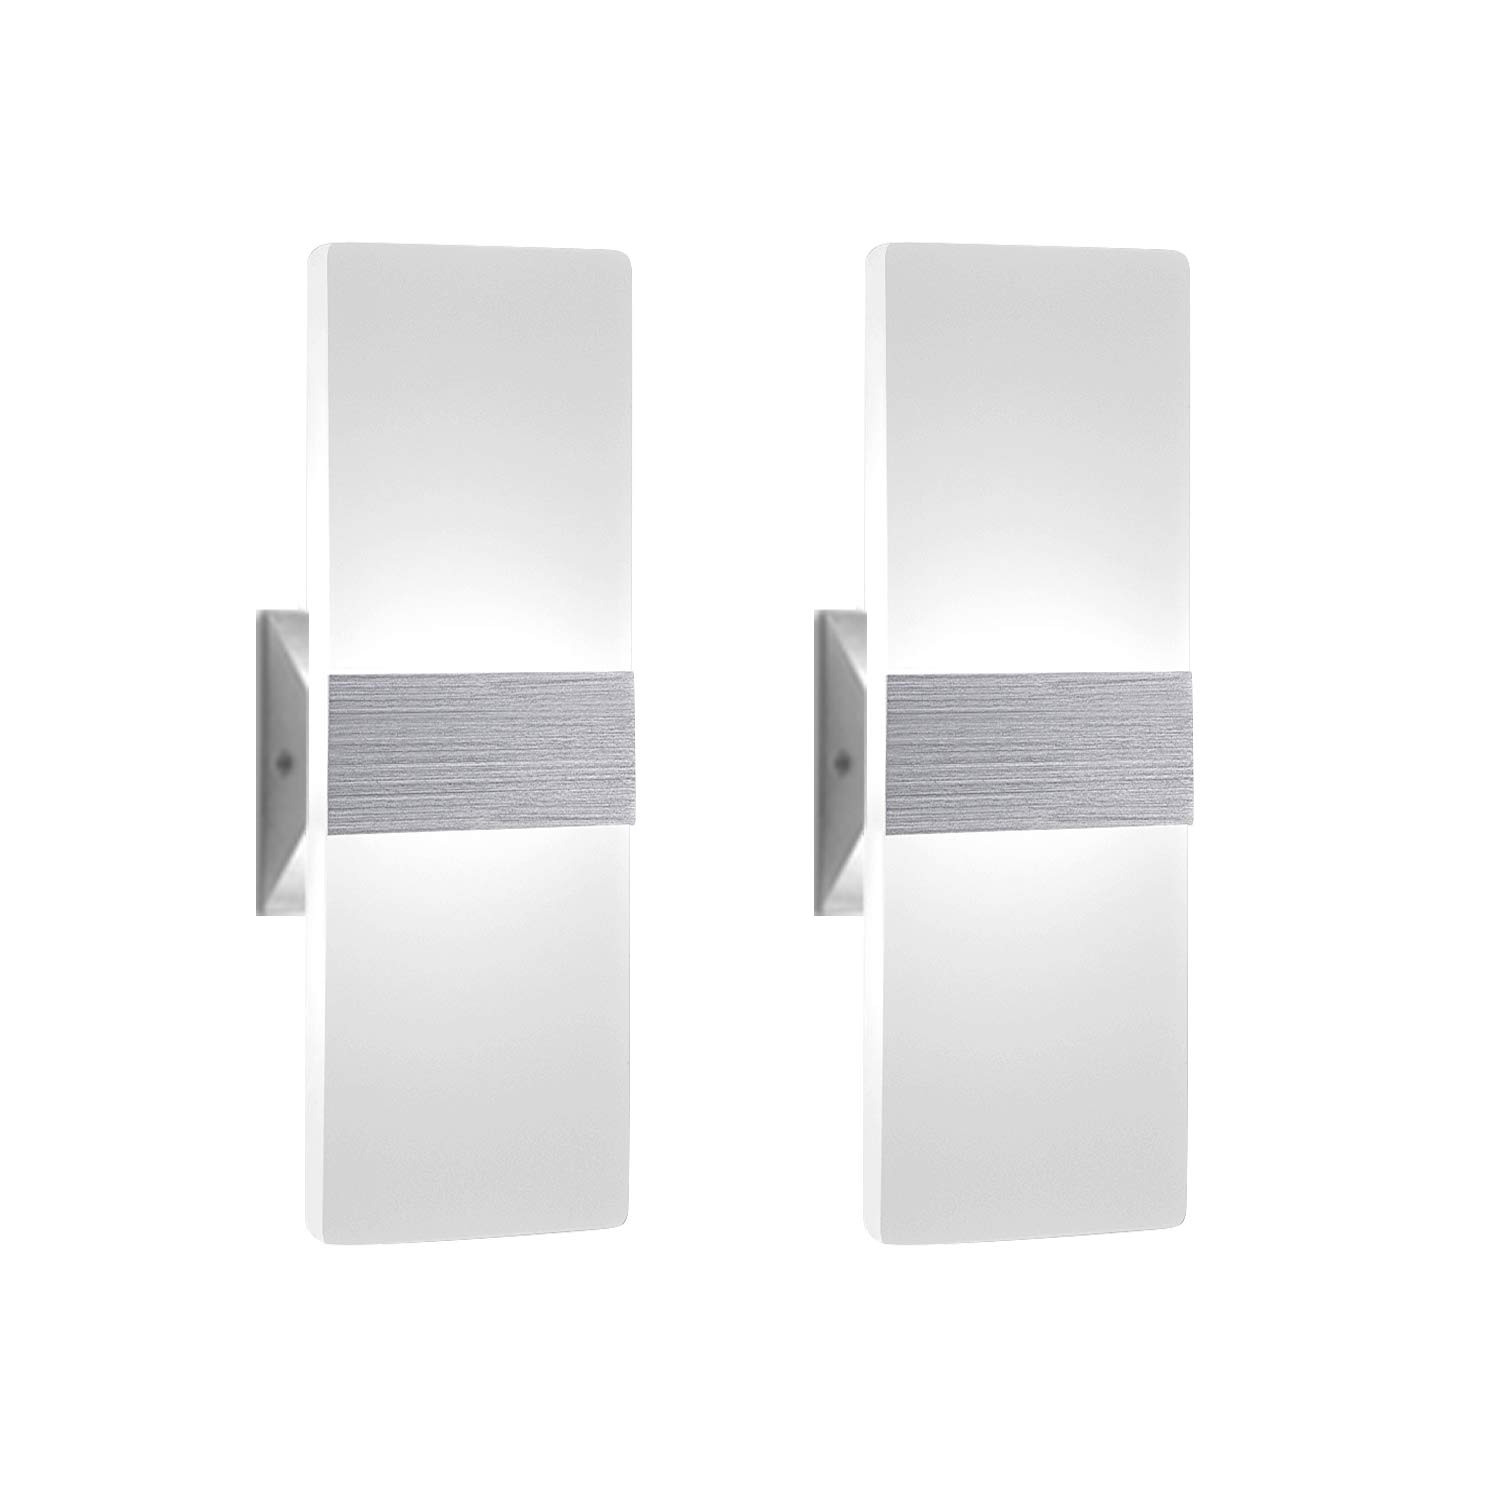 Modern Wall Sconce 12W, Set of 2 LED Wall Lamp Cool White, Acrylic Material Wall Mounted Wall Lights